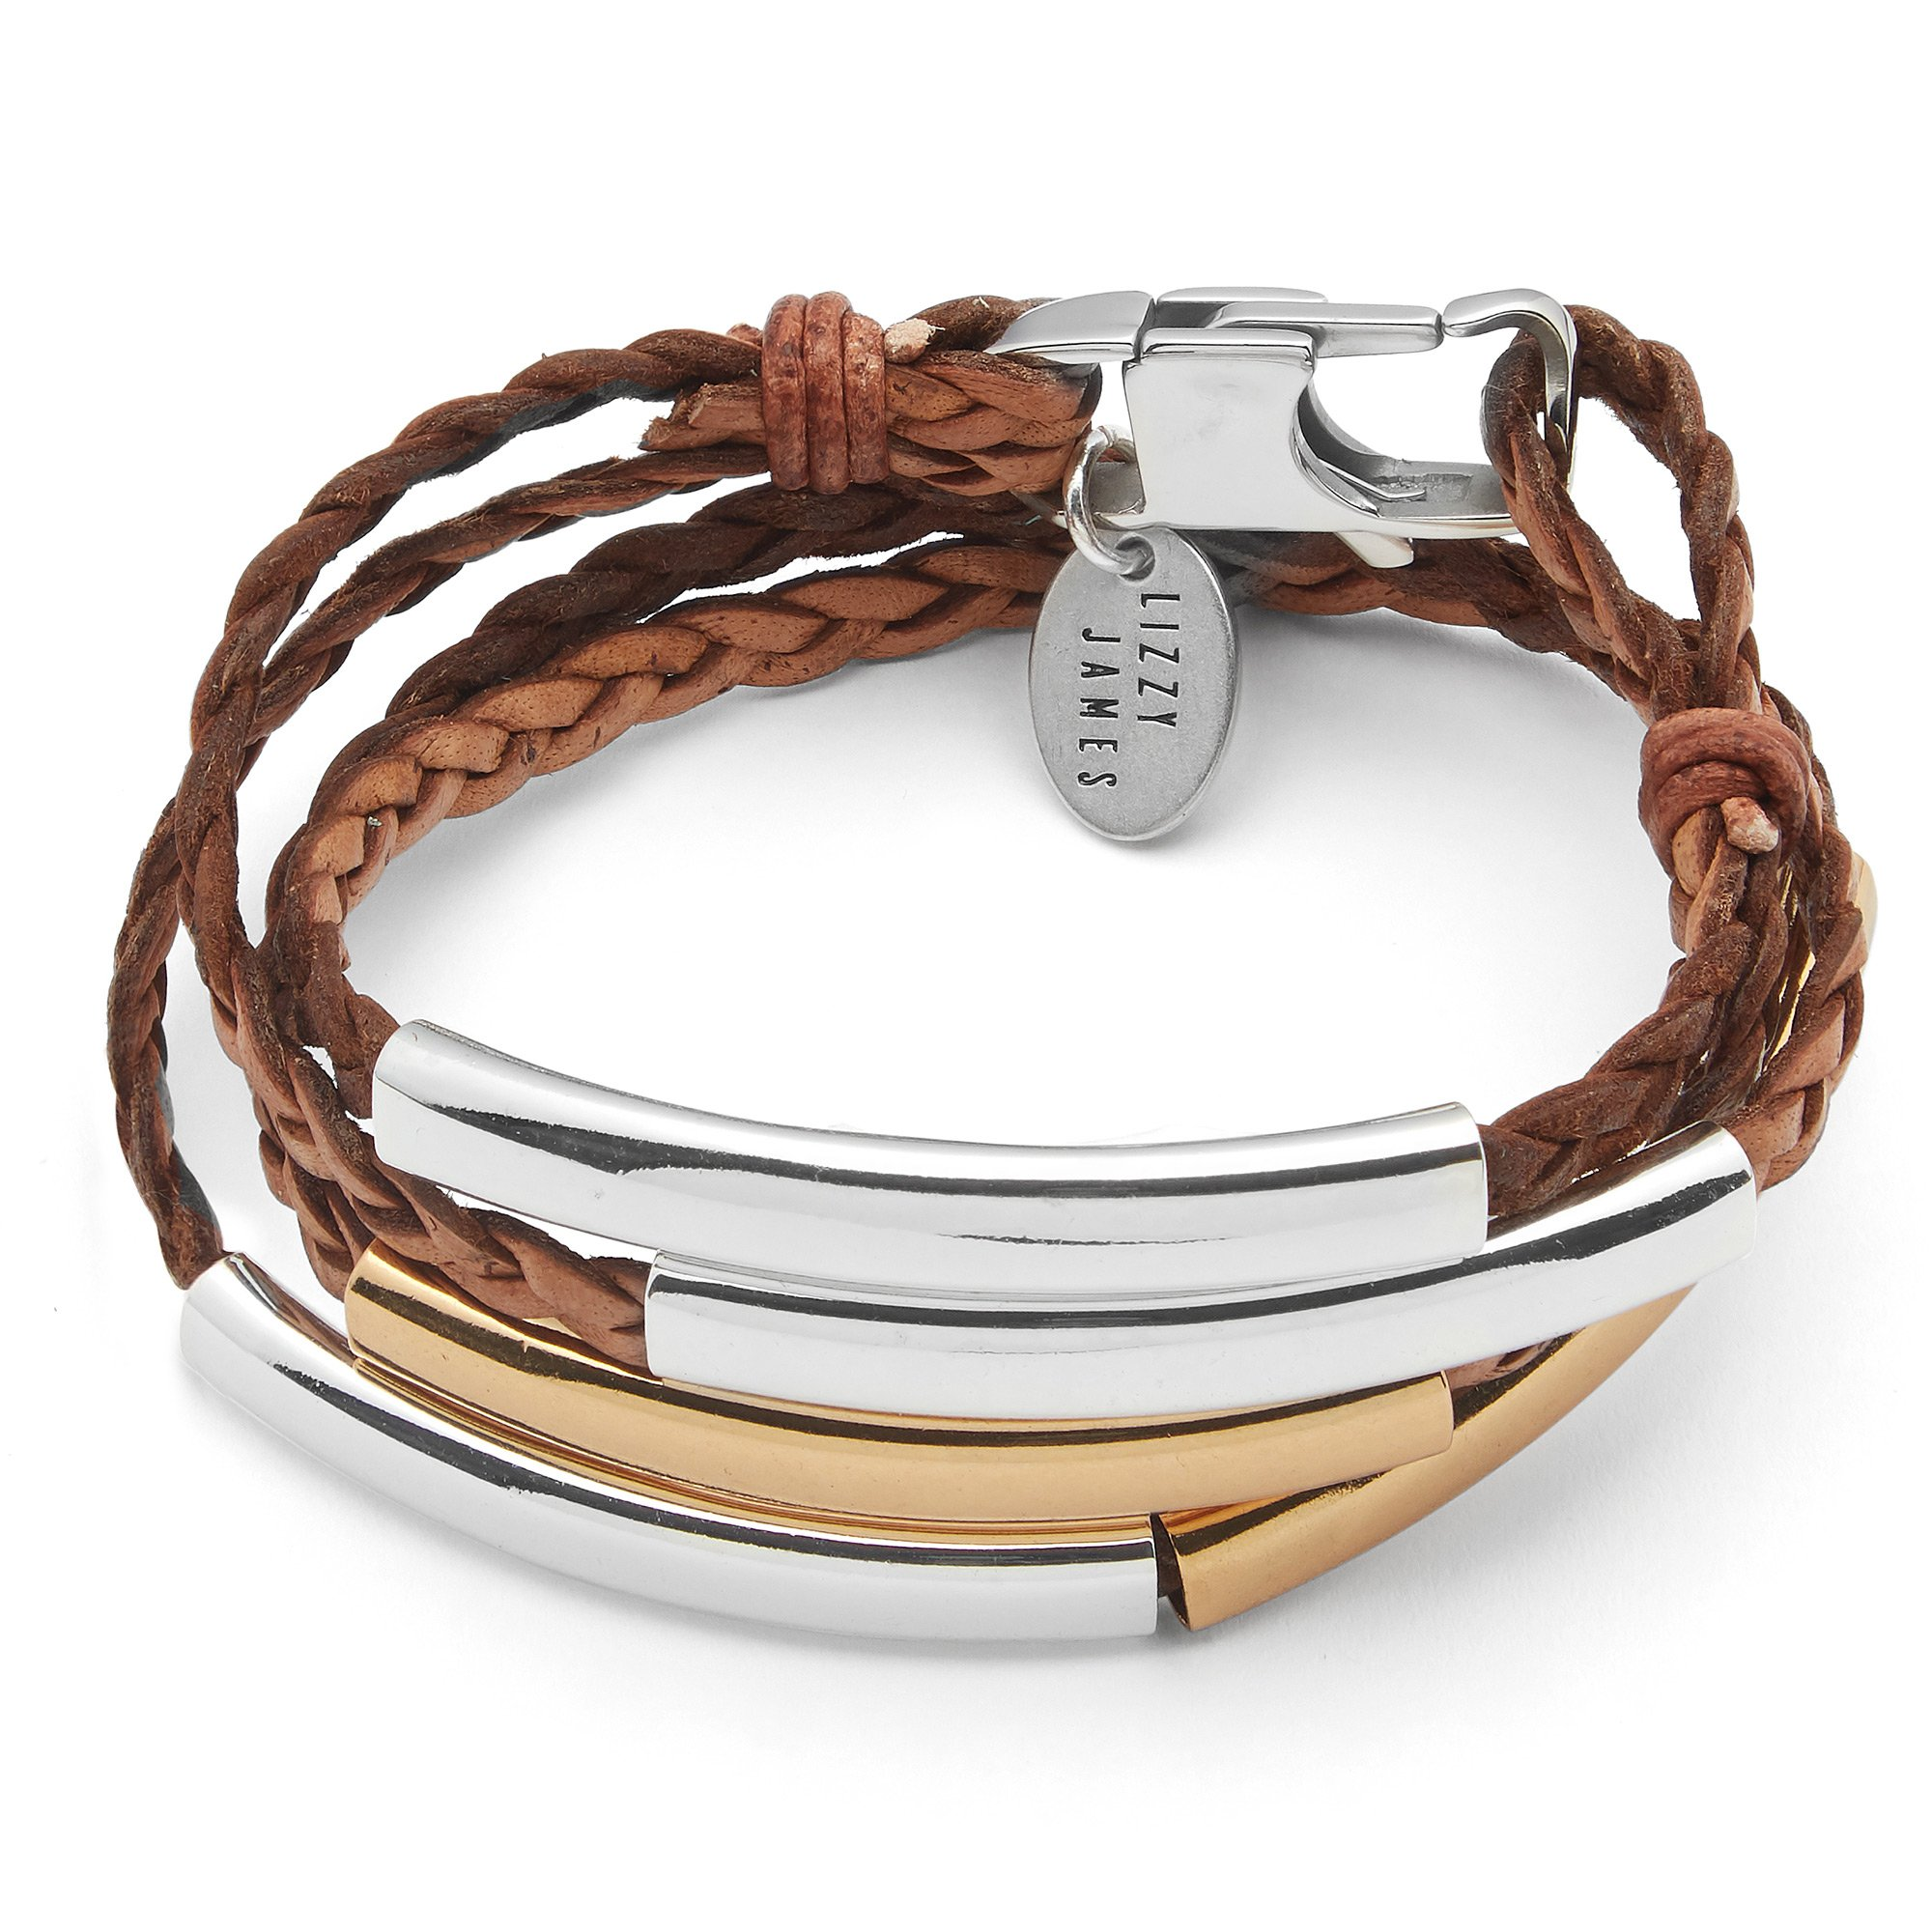 Lizzy James Mini Addison Braided Leather Wrap Bracelet in Gold and Silver in Natural Antique Brown (Large)